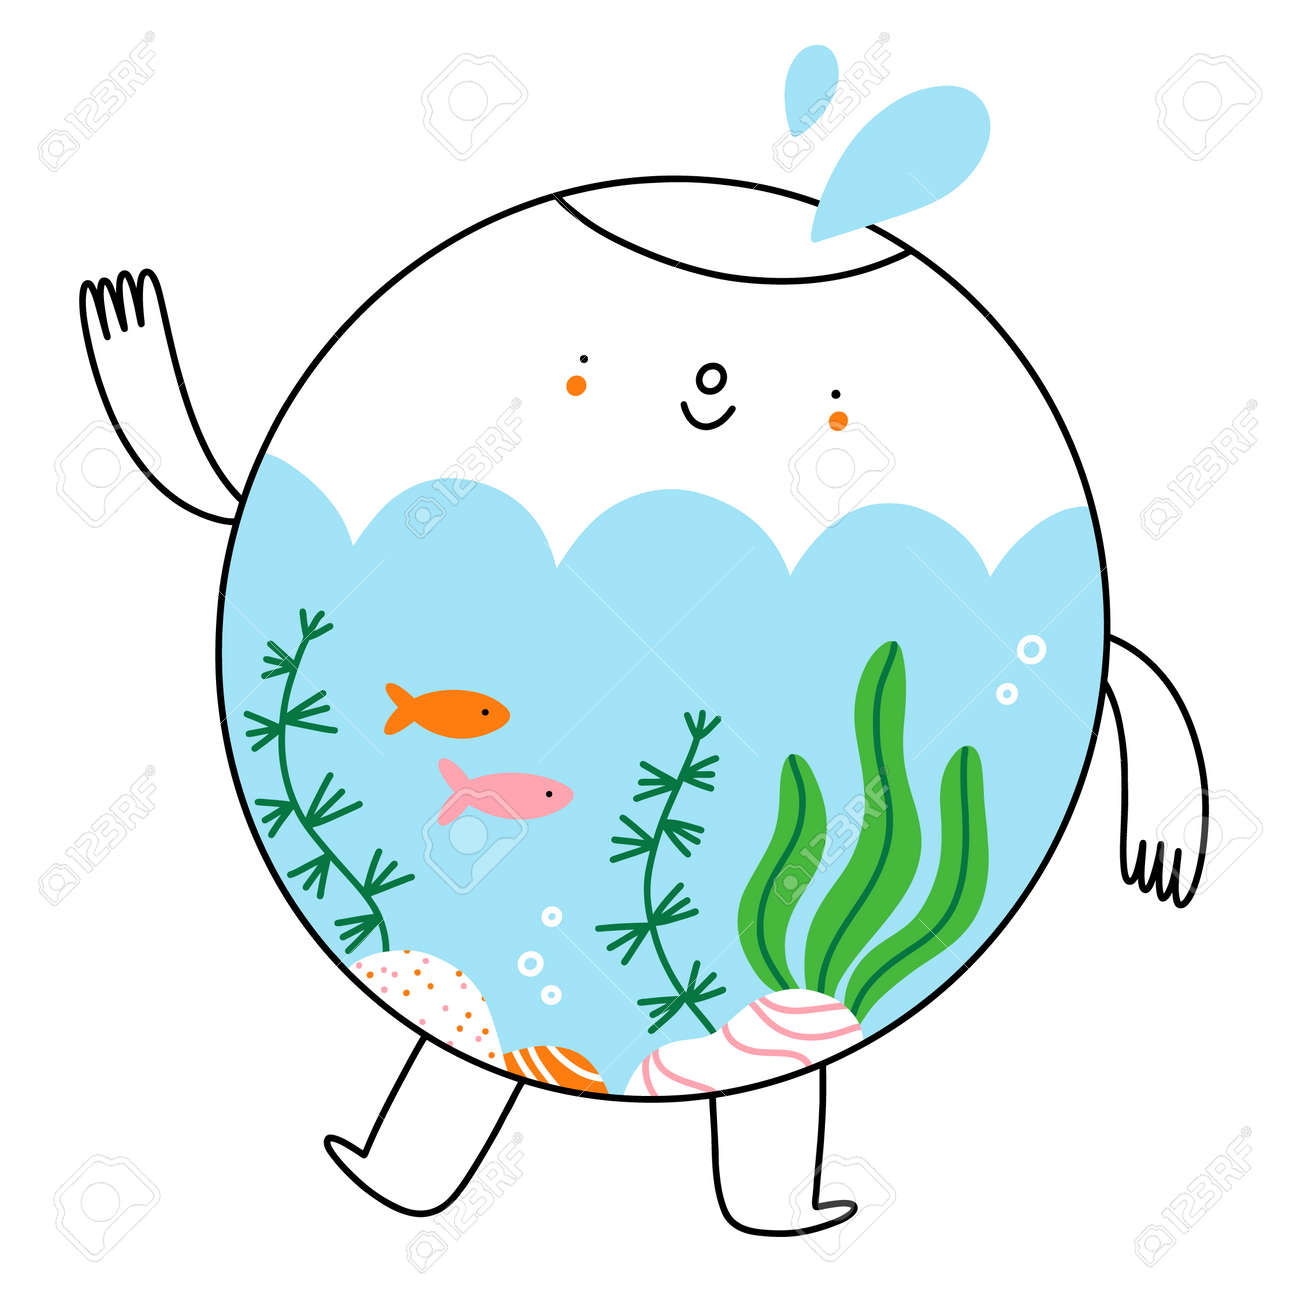 Cute little aquarium character with fish and seaweed, cartoon vector illustration isolated on white background - 166925069